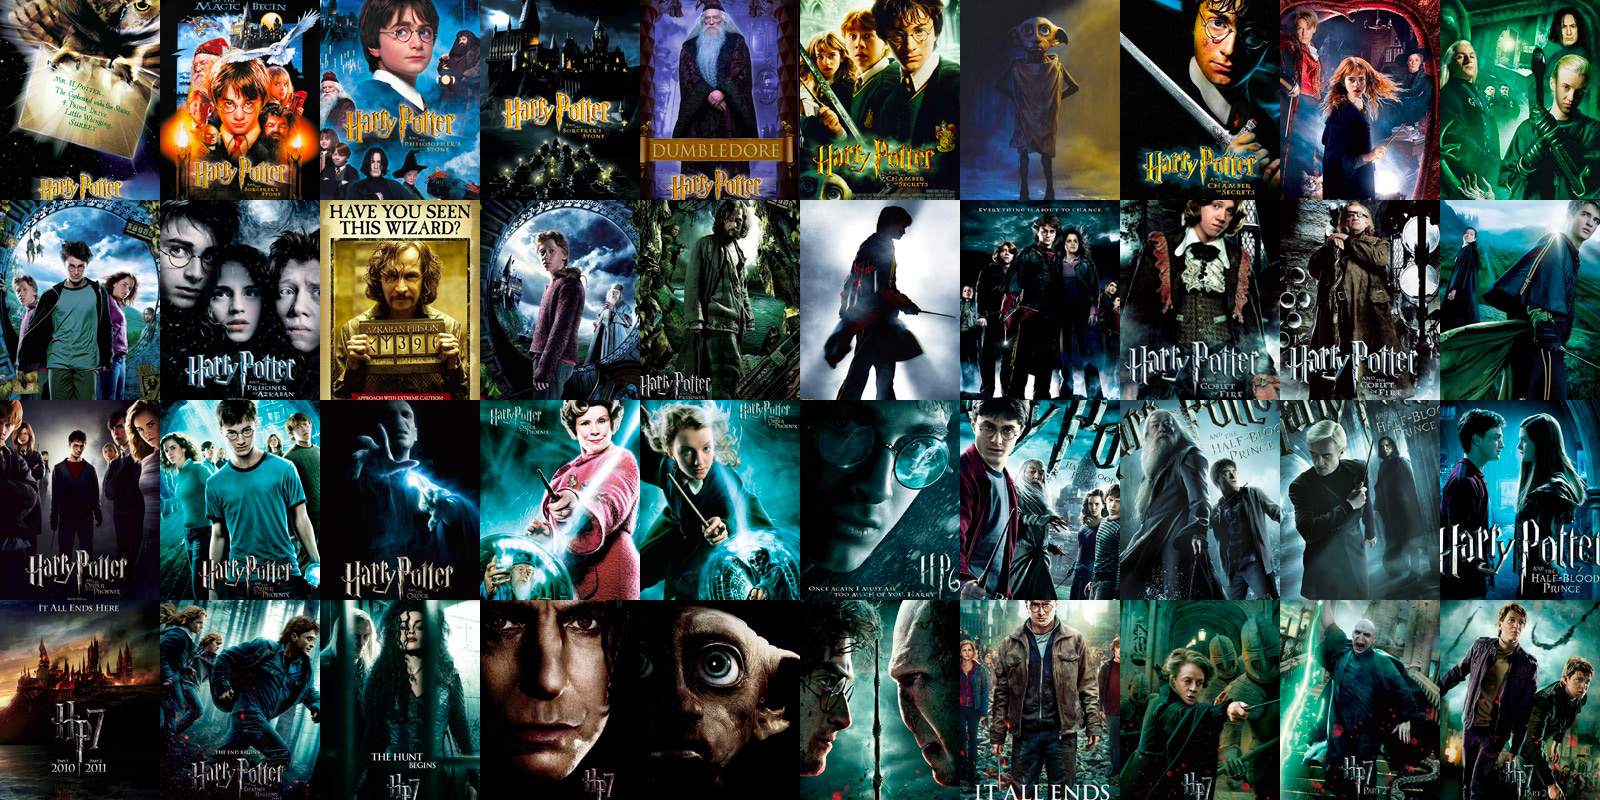 A collage of 'Harry Potter' movie posters.